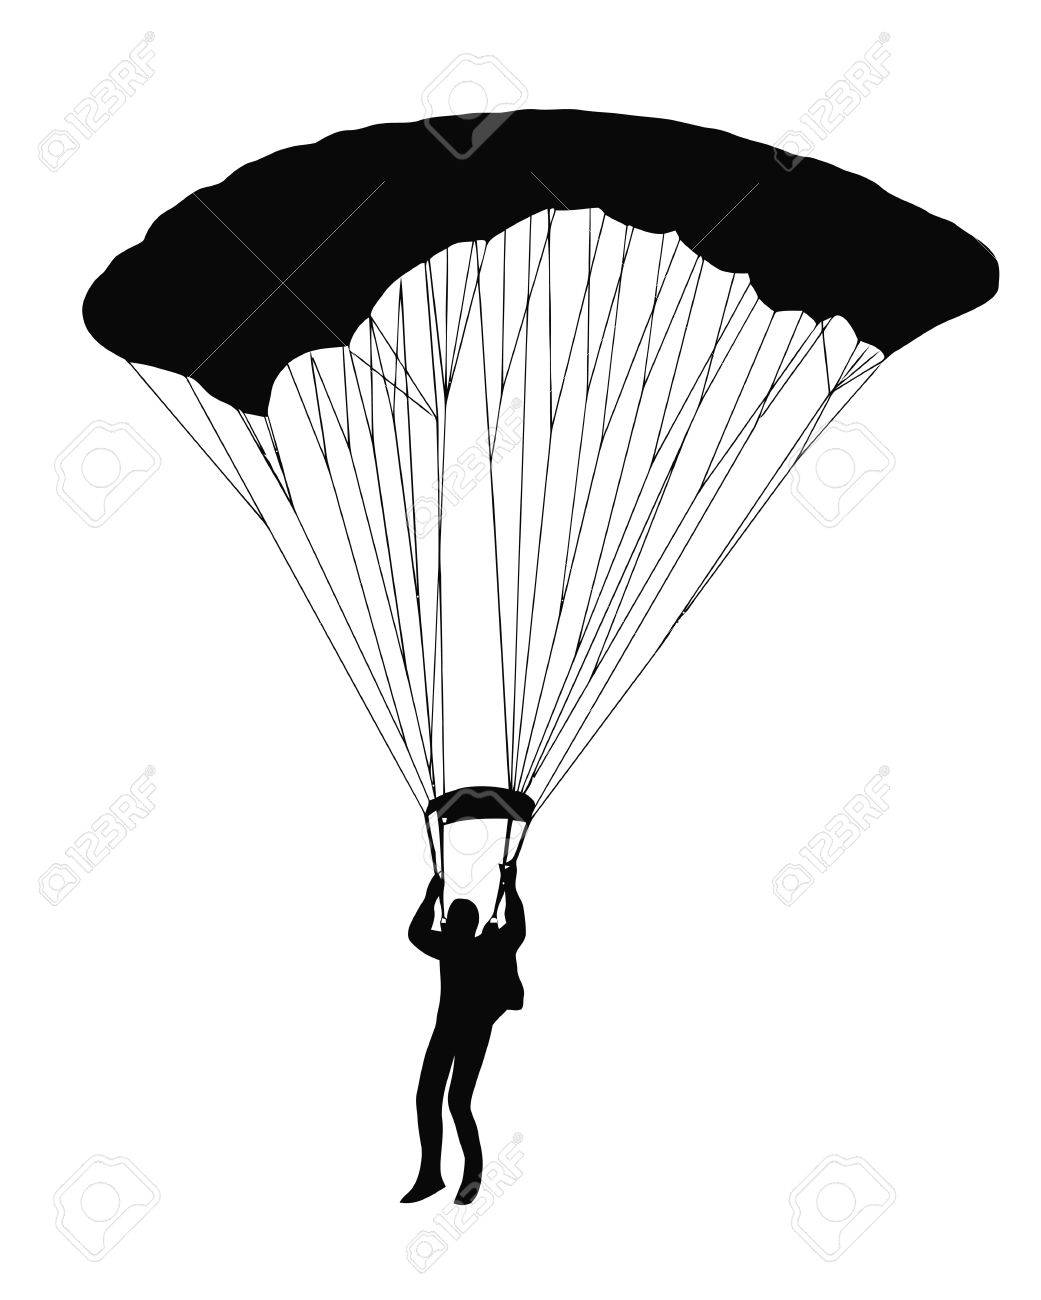 Silhouette of sky diver with open parachute Stock Vector - 10848455